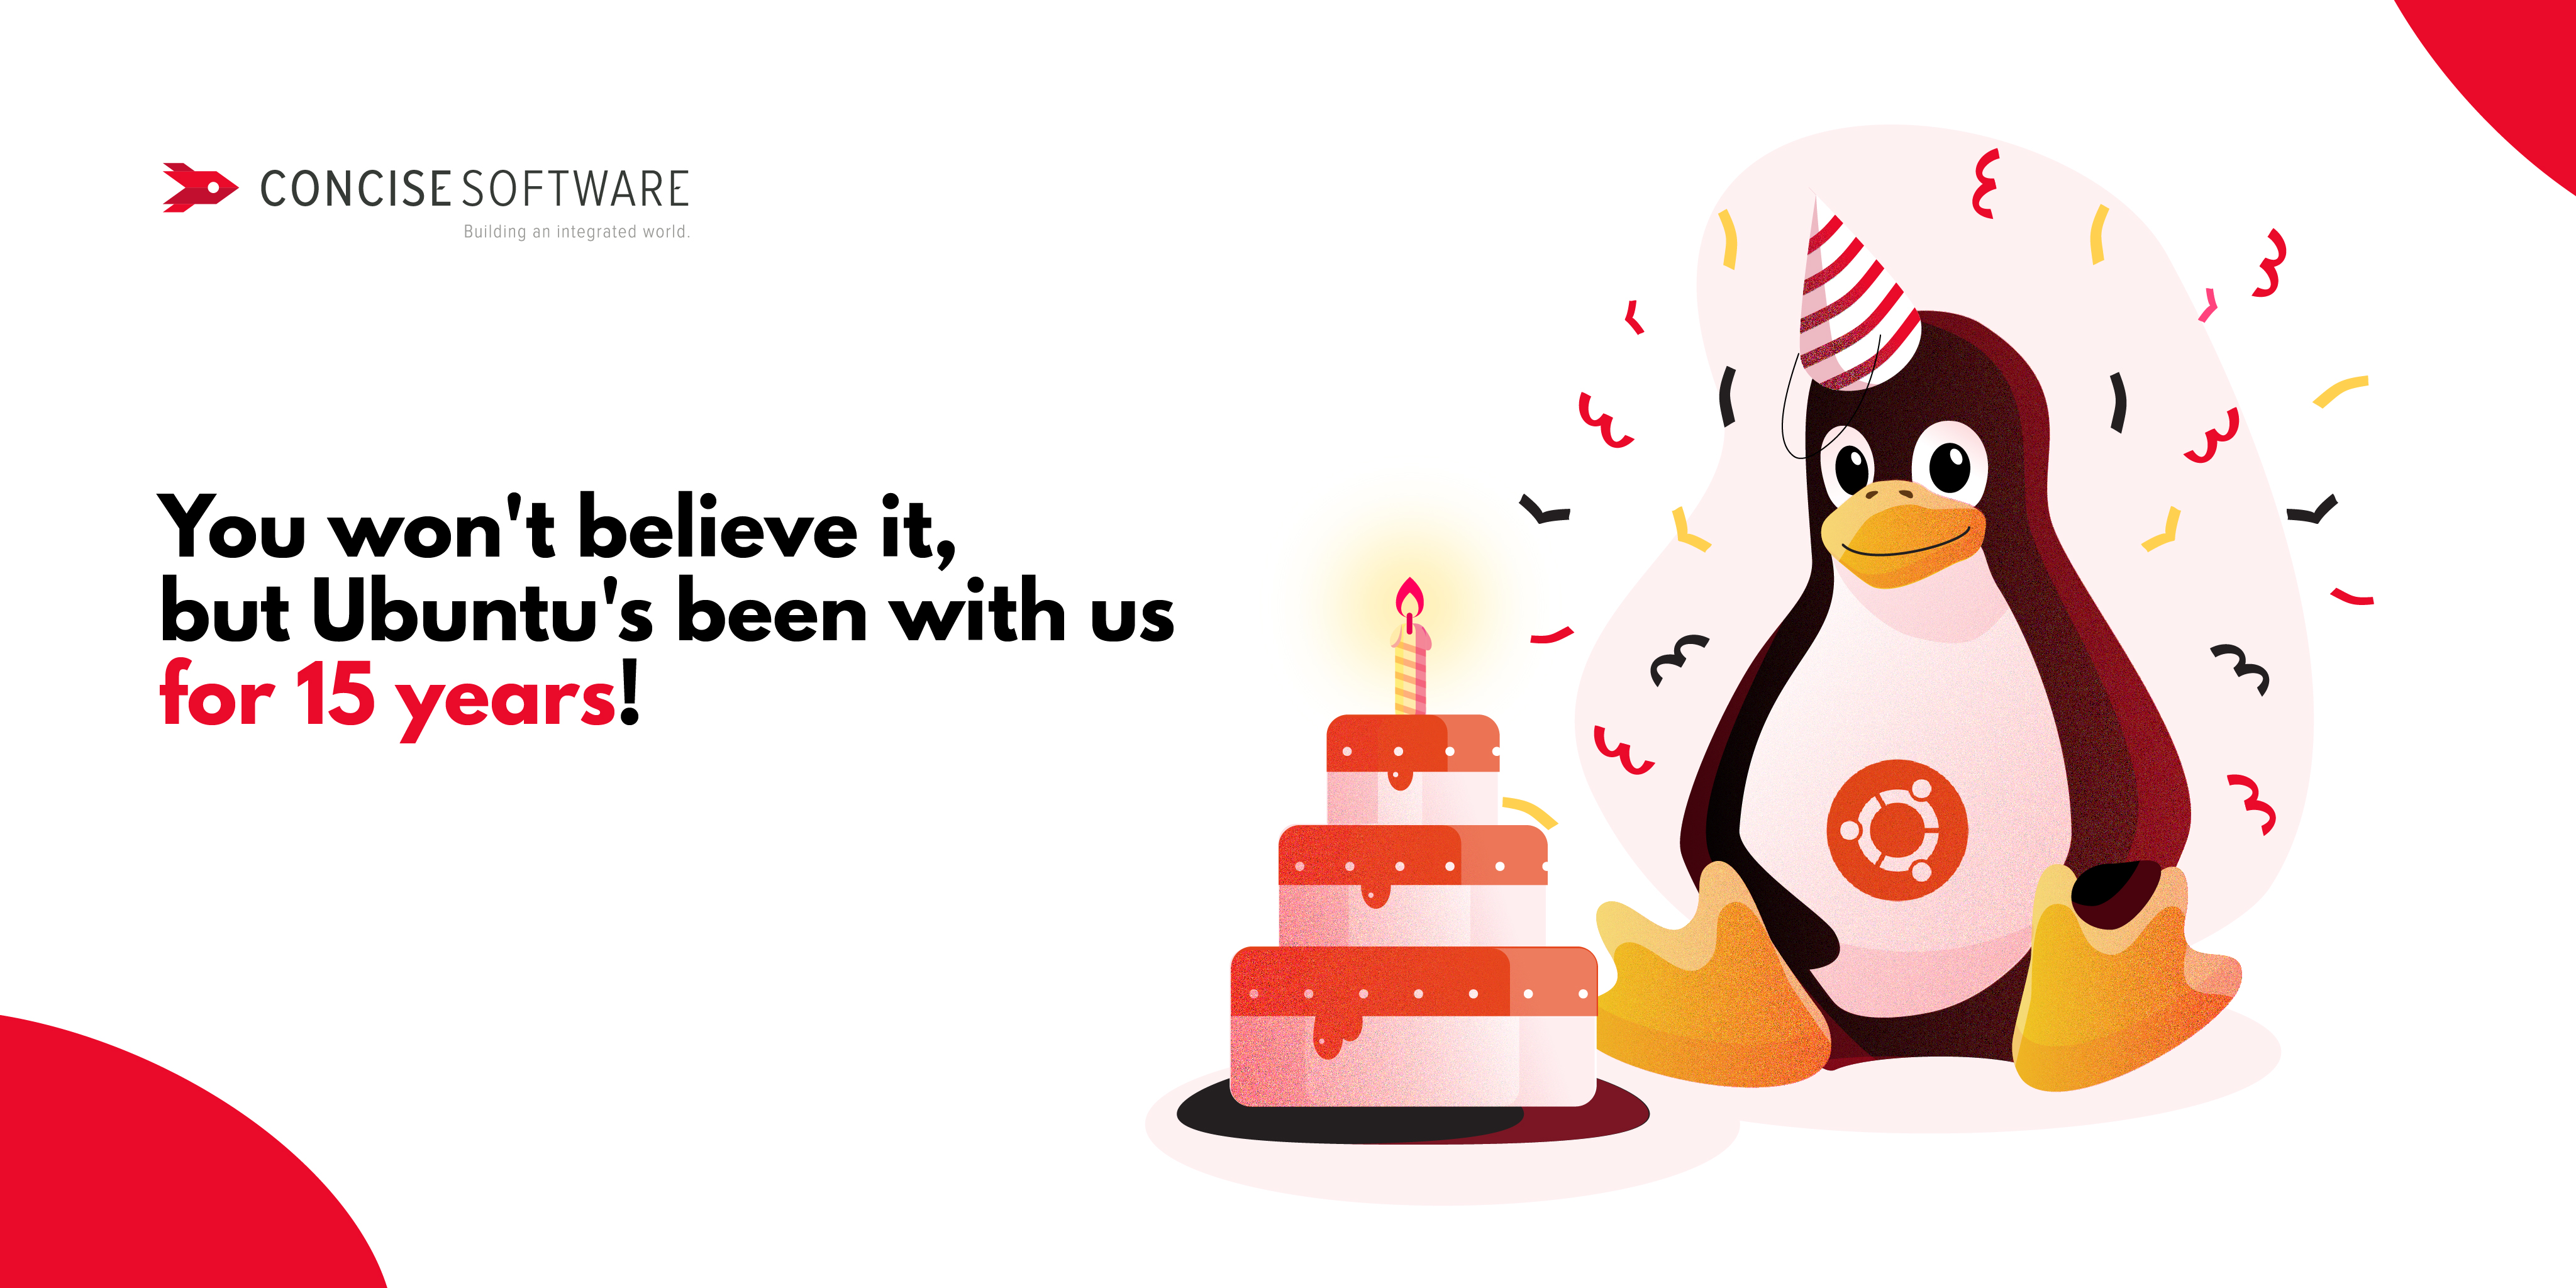 Ubuntu has been with us for 15 years!   Concise Software